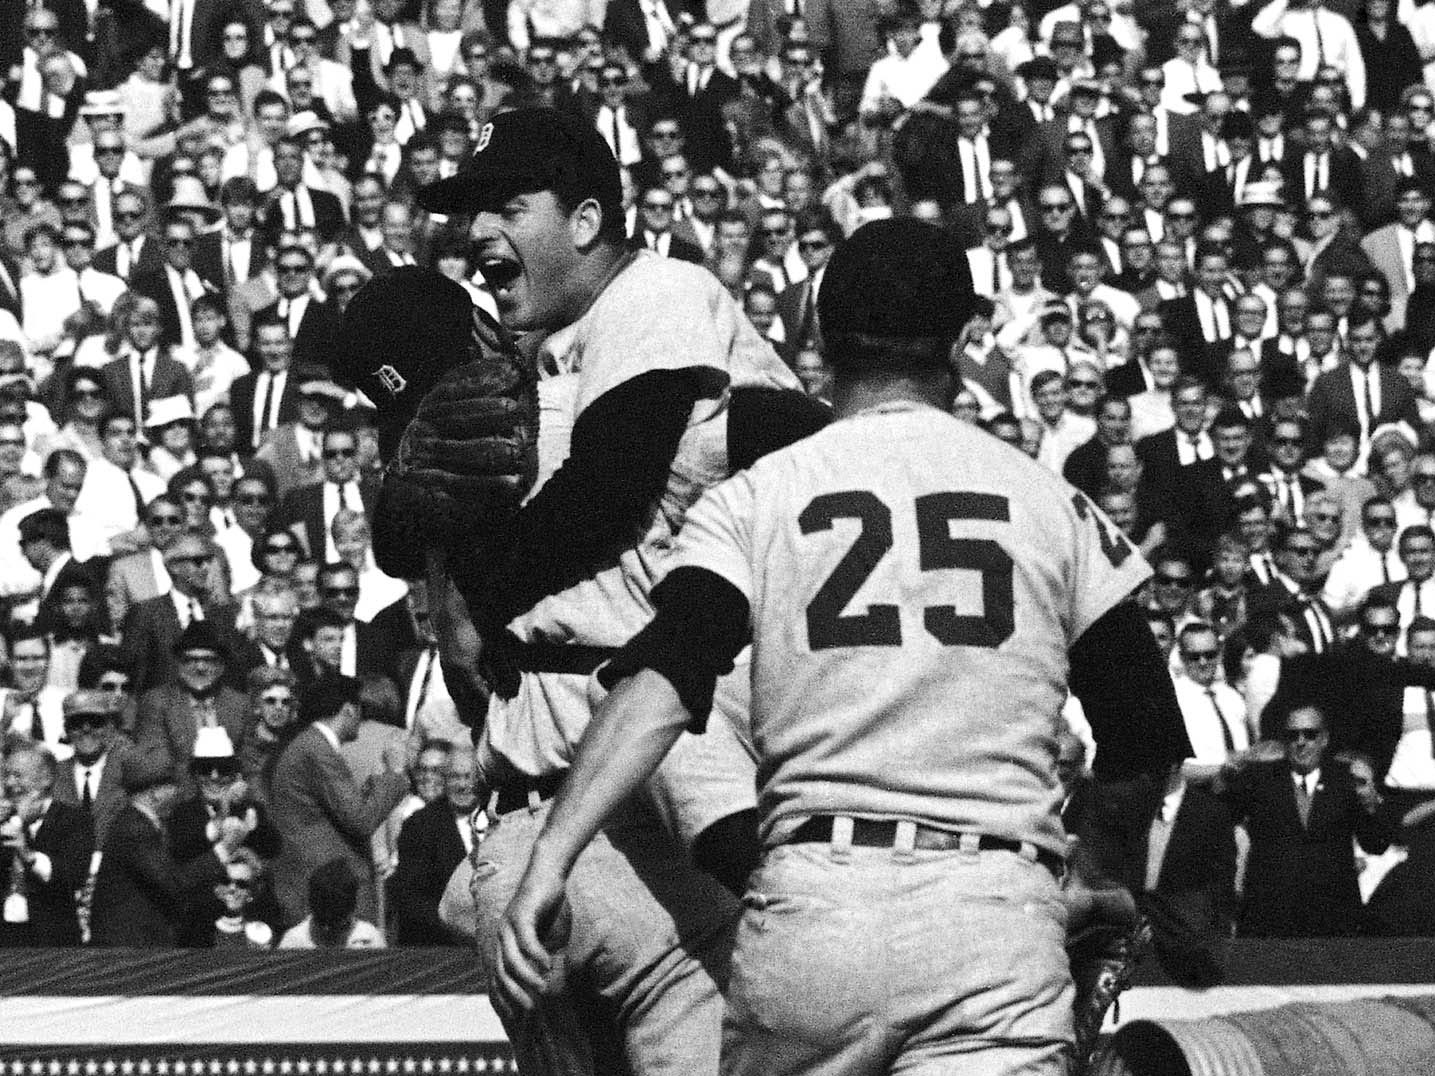 Detroit Tigers catcher Bill Freehan and pitcher Mickey Lolich embrace after defeating the St. Louis Cardinals 4-1 in Game 7 of the World Series on Thursday, Oct. 11, 1968 at Busch Stadium in St. Louis. Joining the celebration is Norm Cash (25). Lolich became the twelfth pitcher to win three games in the World Series.